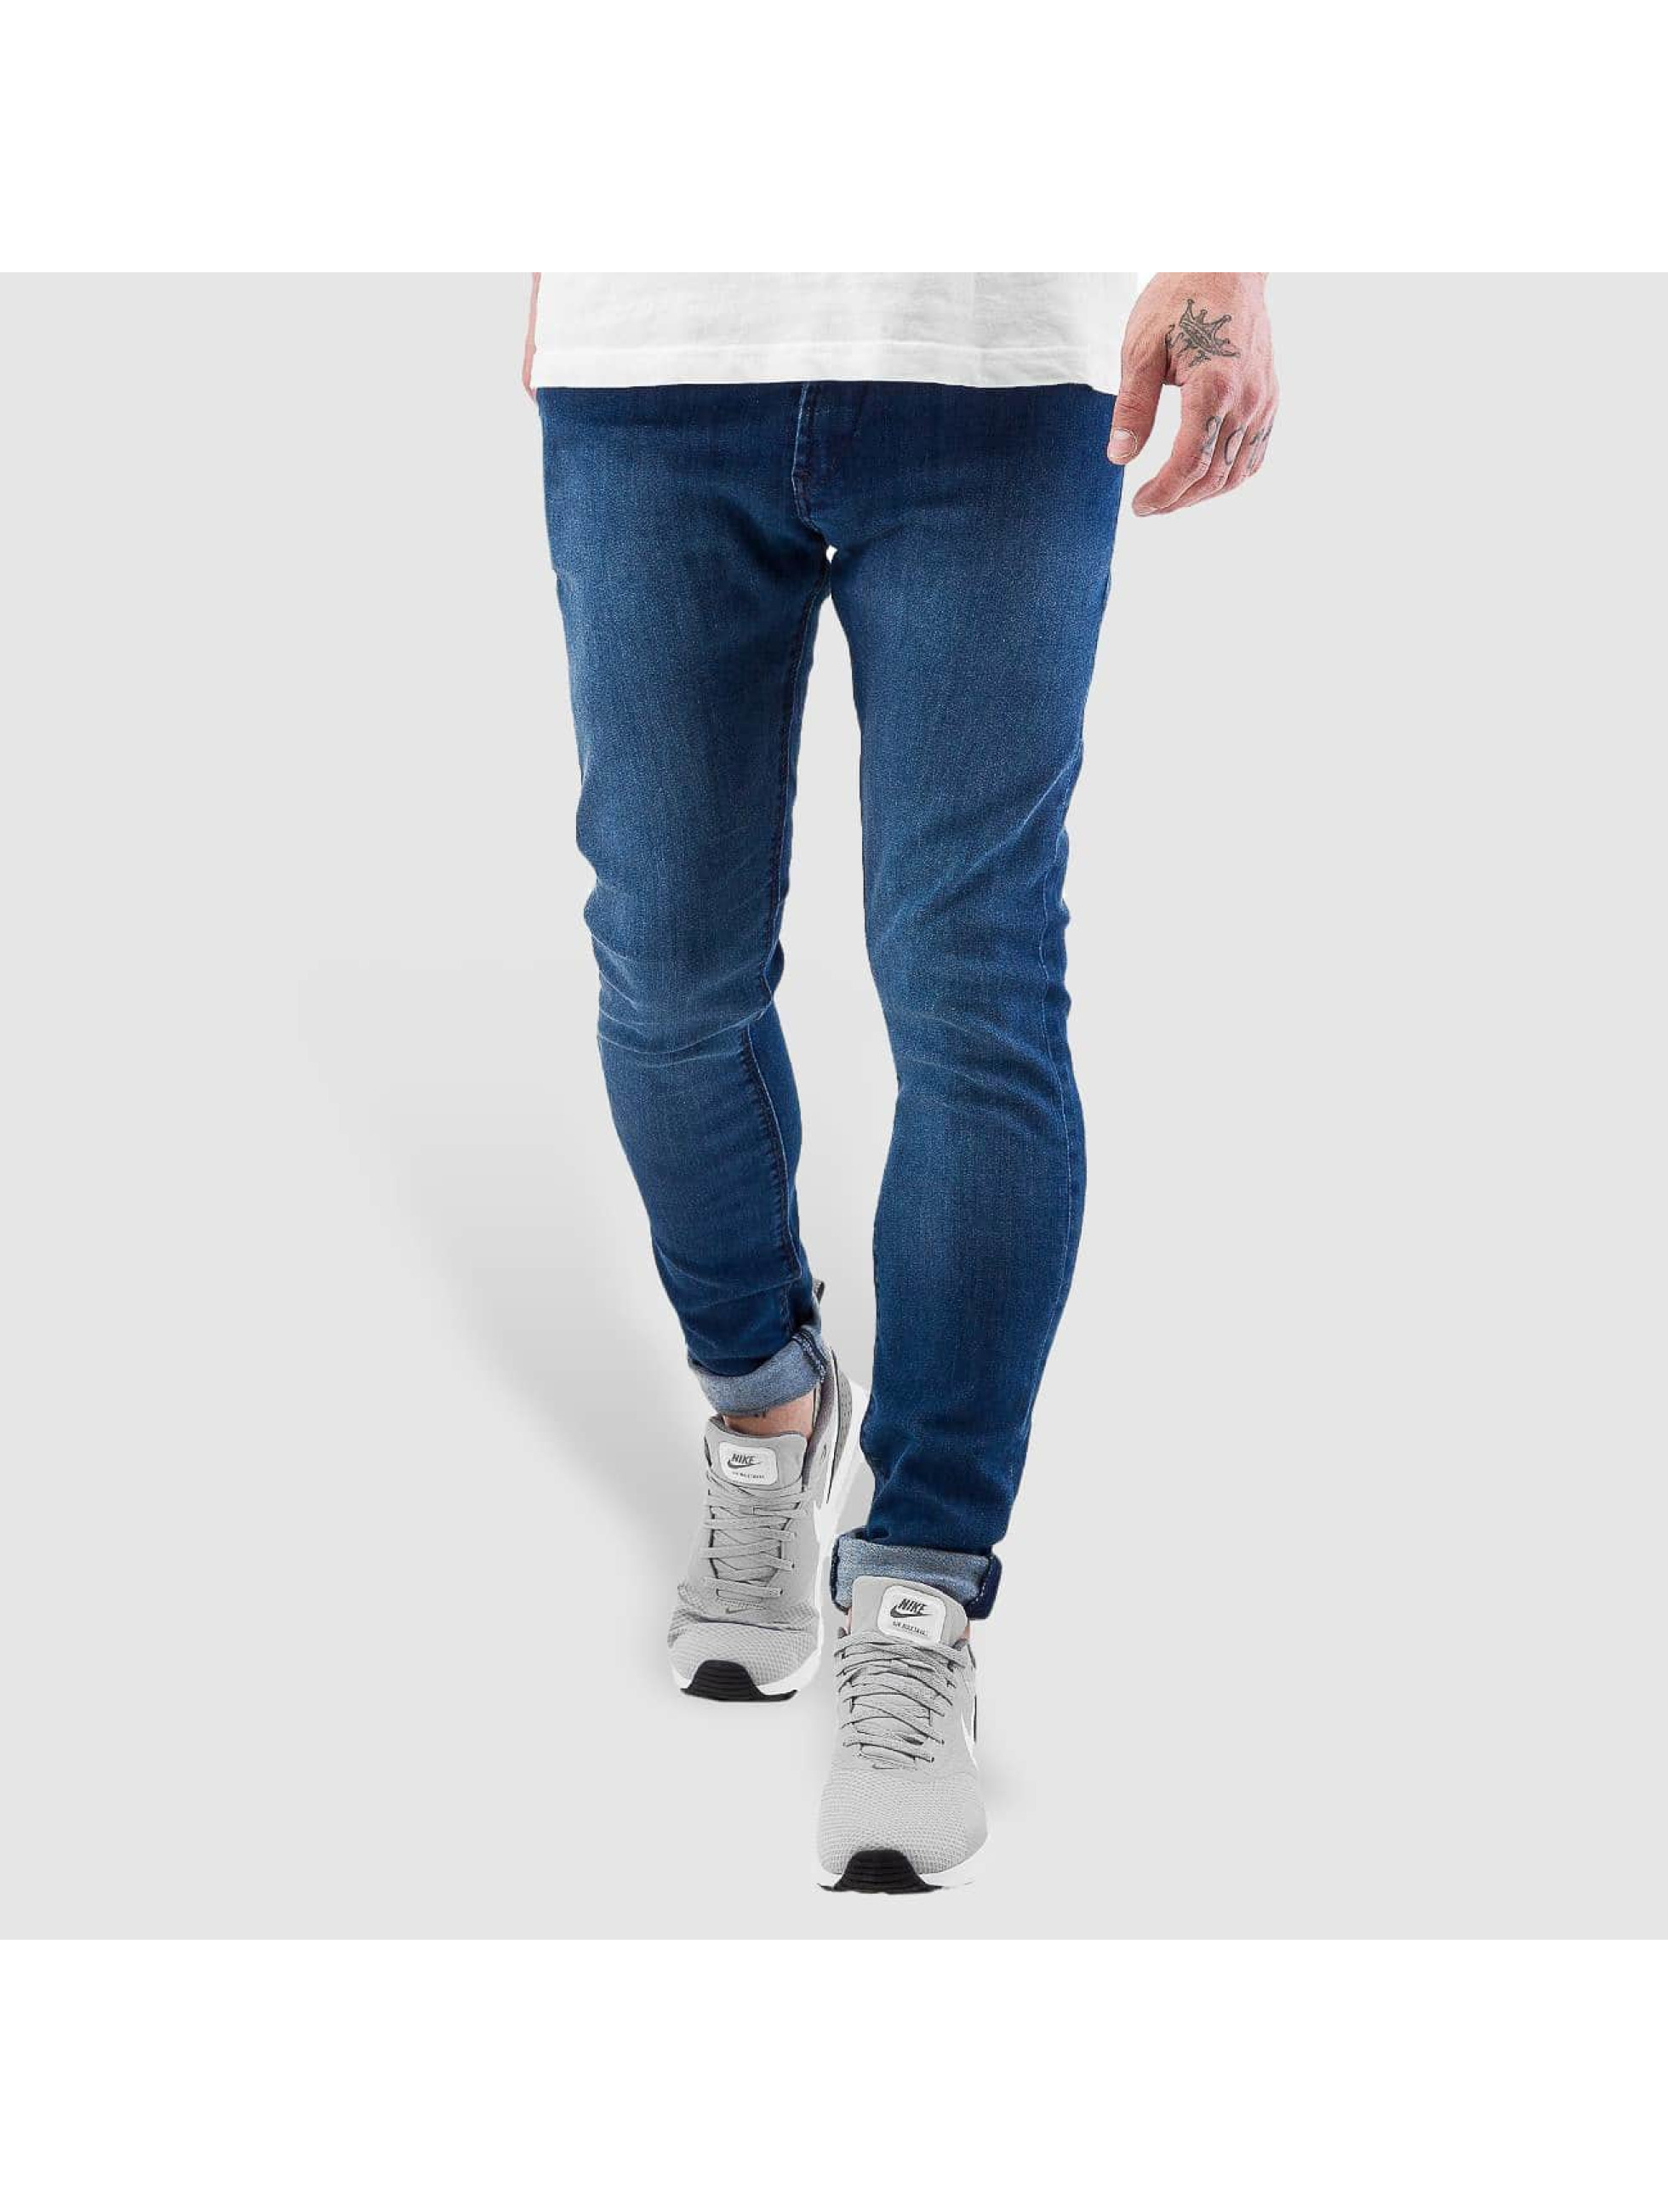 Reell Jeans Männer Skinny Jeans Radar Stretch Super Slim Fit in blau